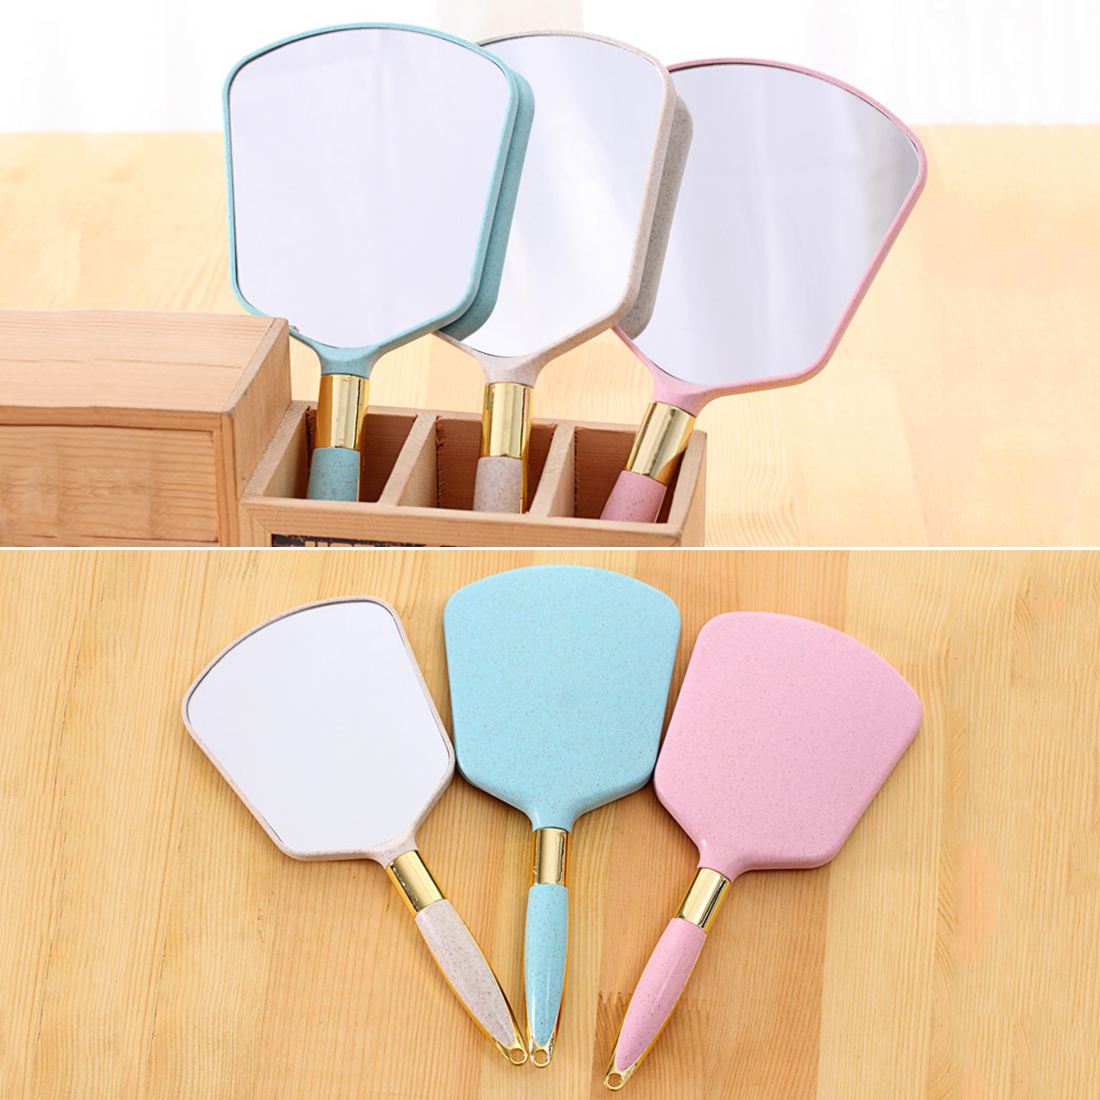 Lovely Vintage Handle Mirror 1PC Cute Plastic Vanity Makeup Mirror Rectangle Hand Hold Cosmetic Mirror Clarity Suspensible